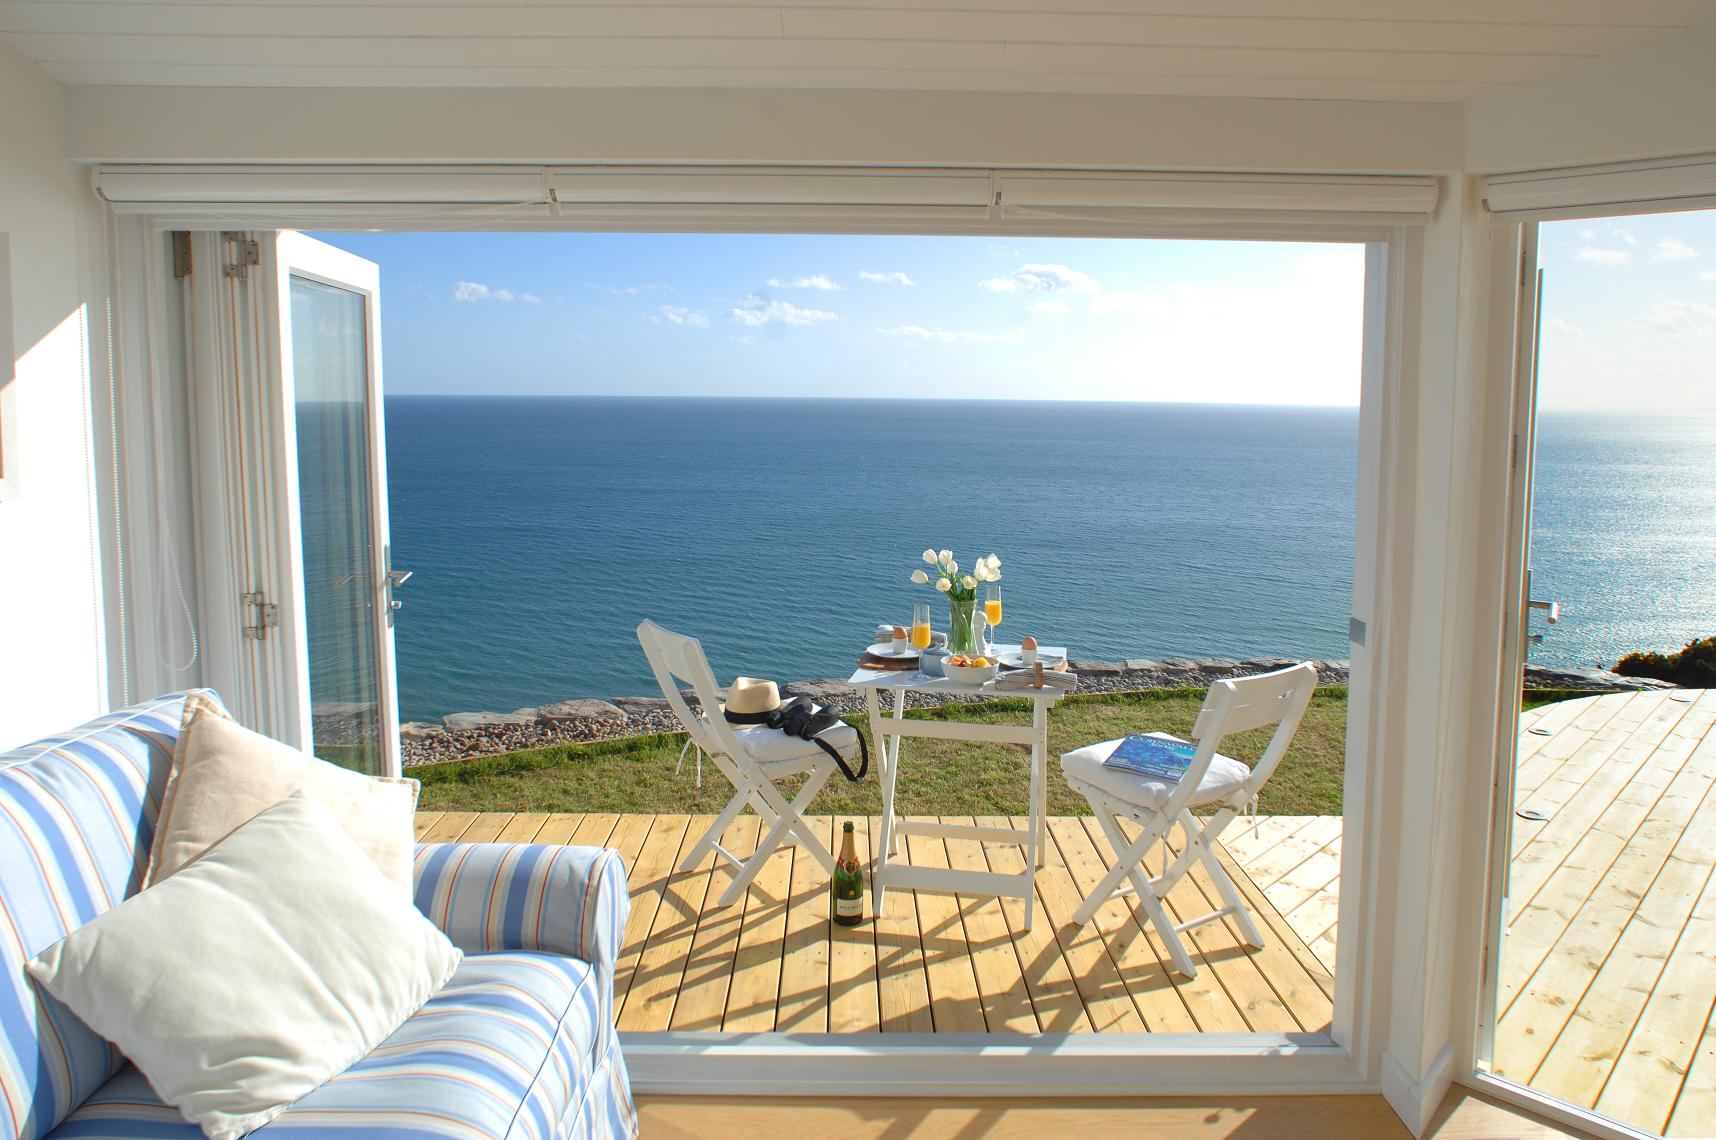 Small Beach House Decorating Ideas The Edge An Idyllic Beach Cottage In Cornwall Small House Bliss